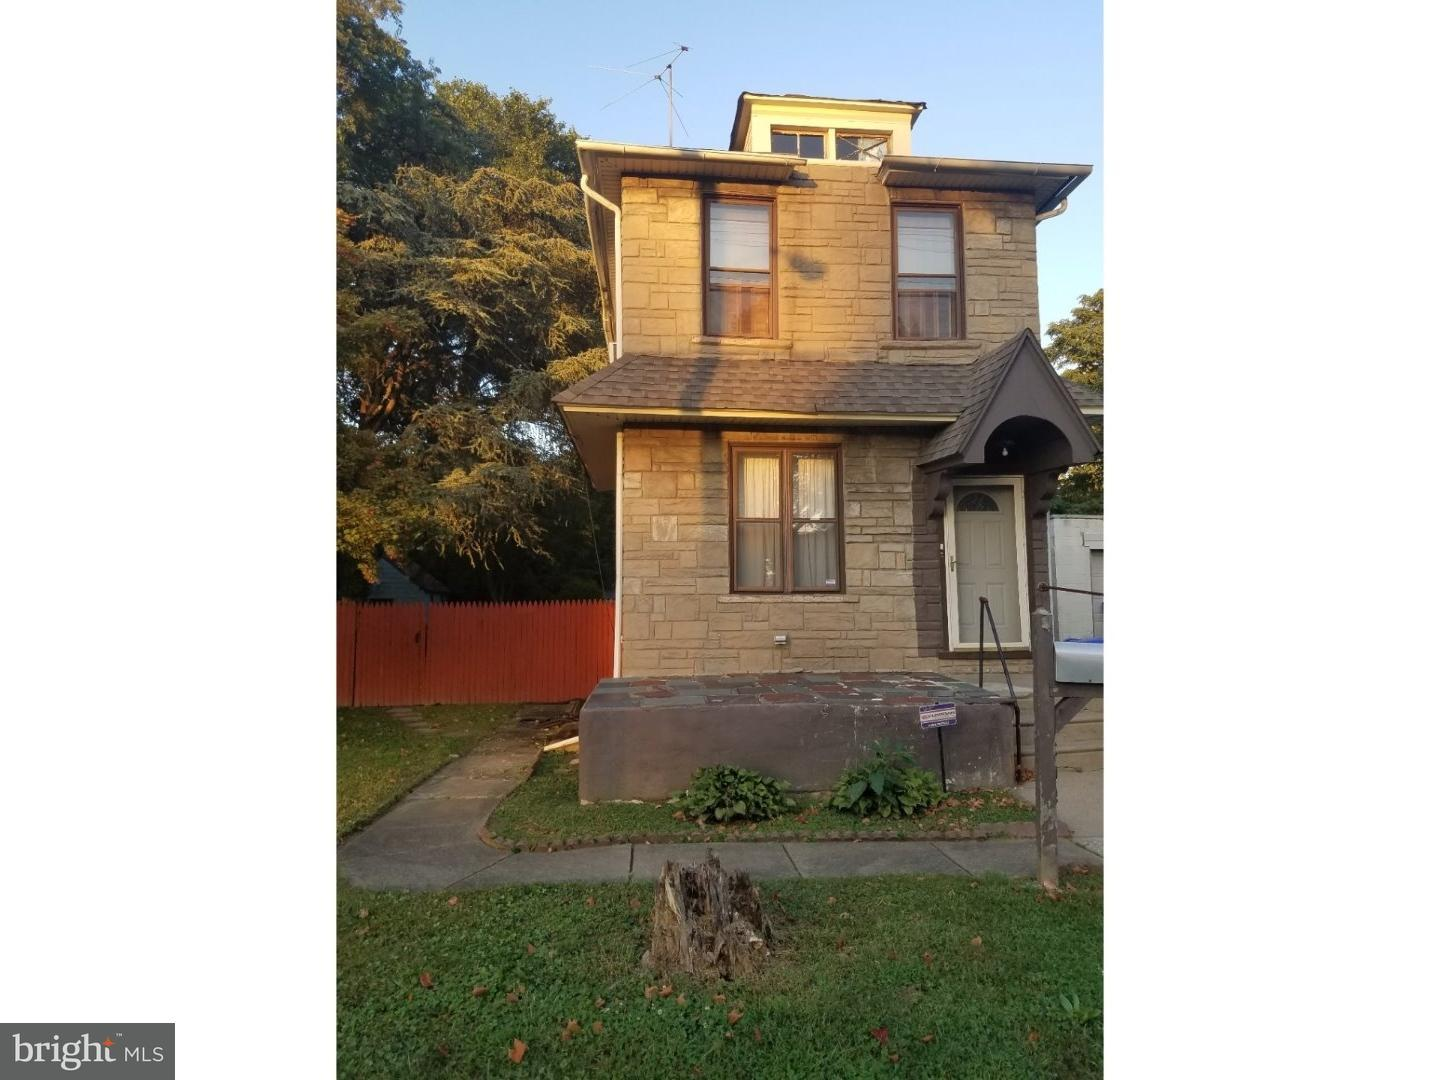 Local Real Estate: Homes for Sale — Melrose Park, PA — Coldwell Banker